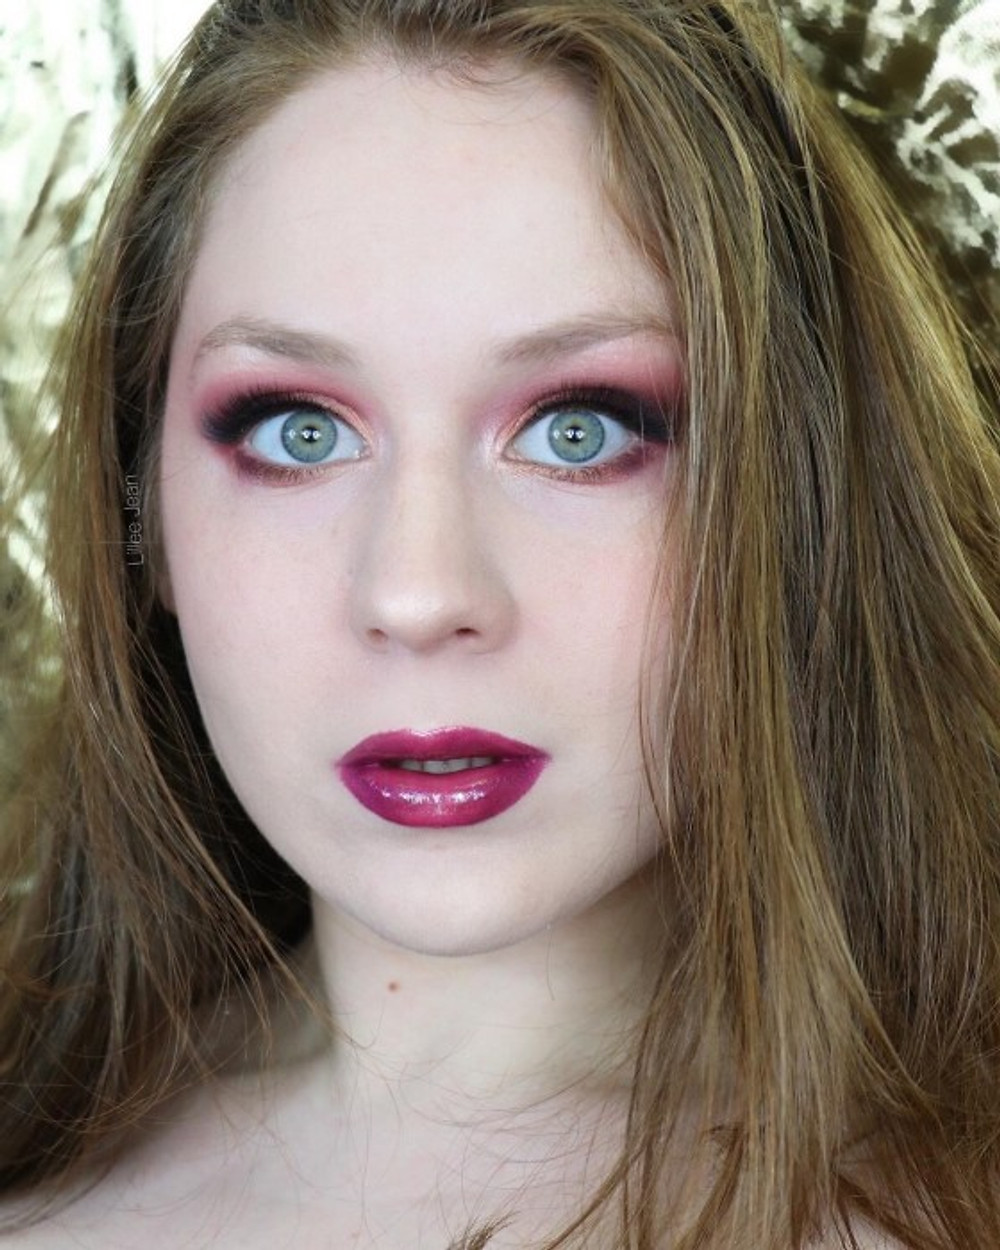 BH Cosmetics Fairy Lights Golden Pink and Purple Makeup Tutorial 2020 | Lillee Jean